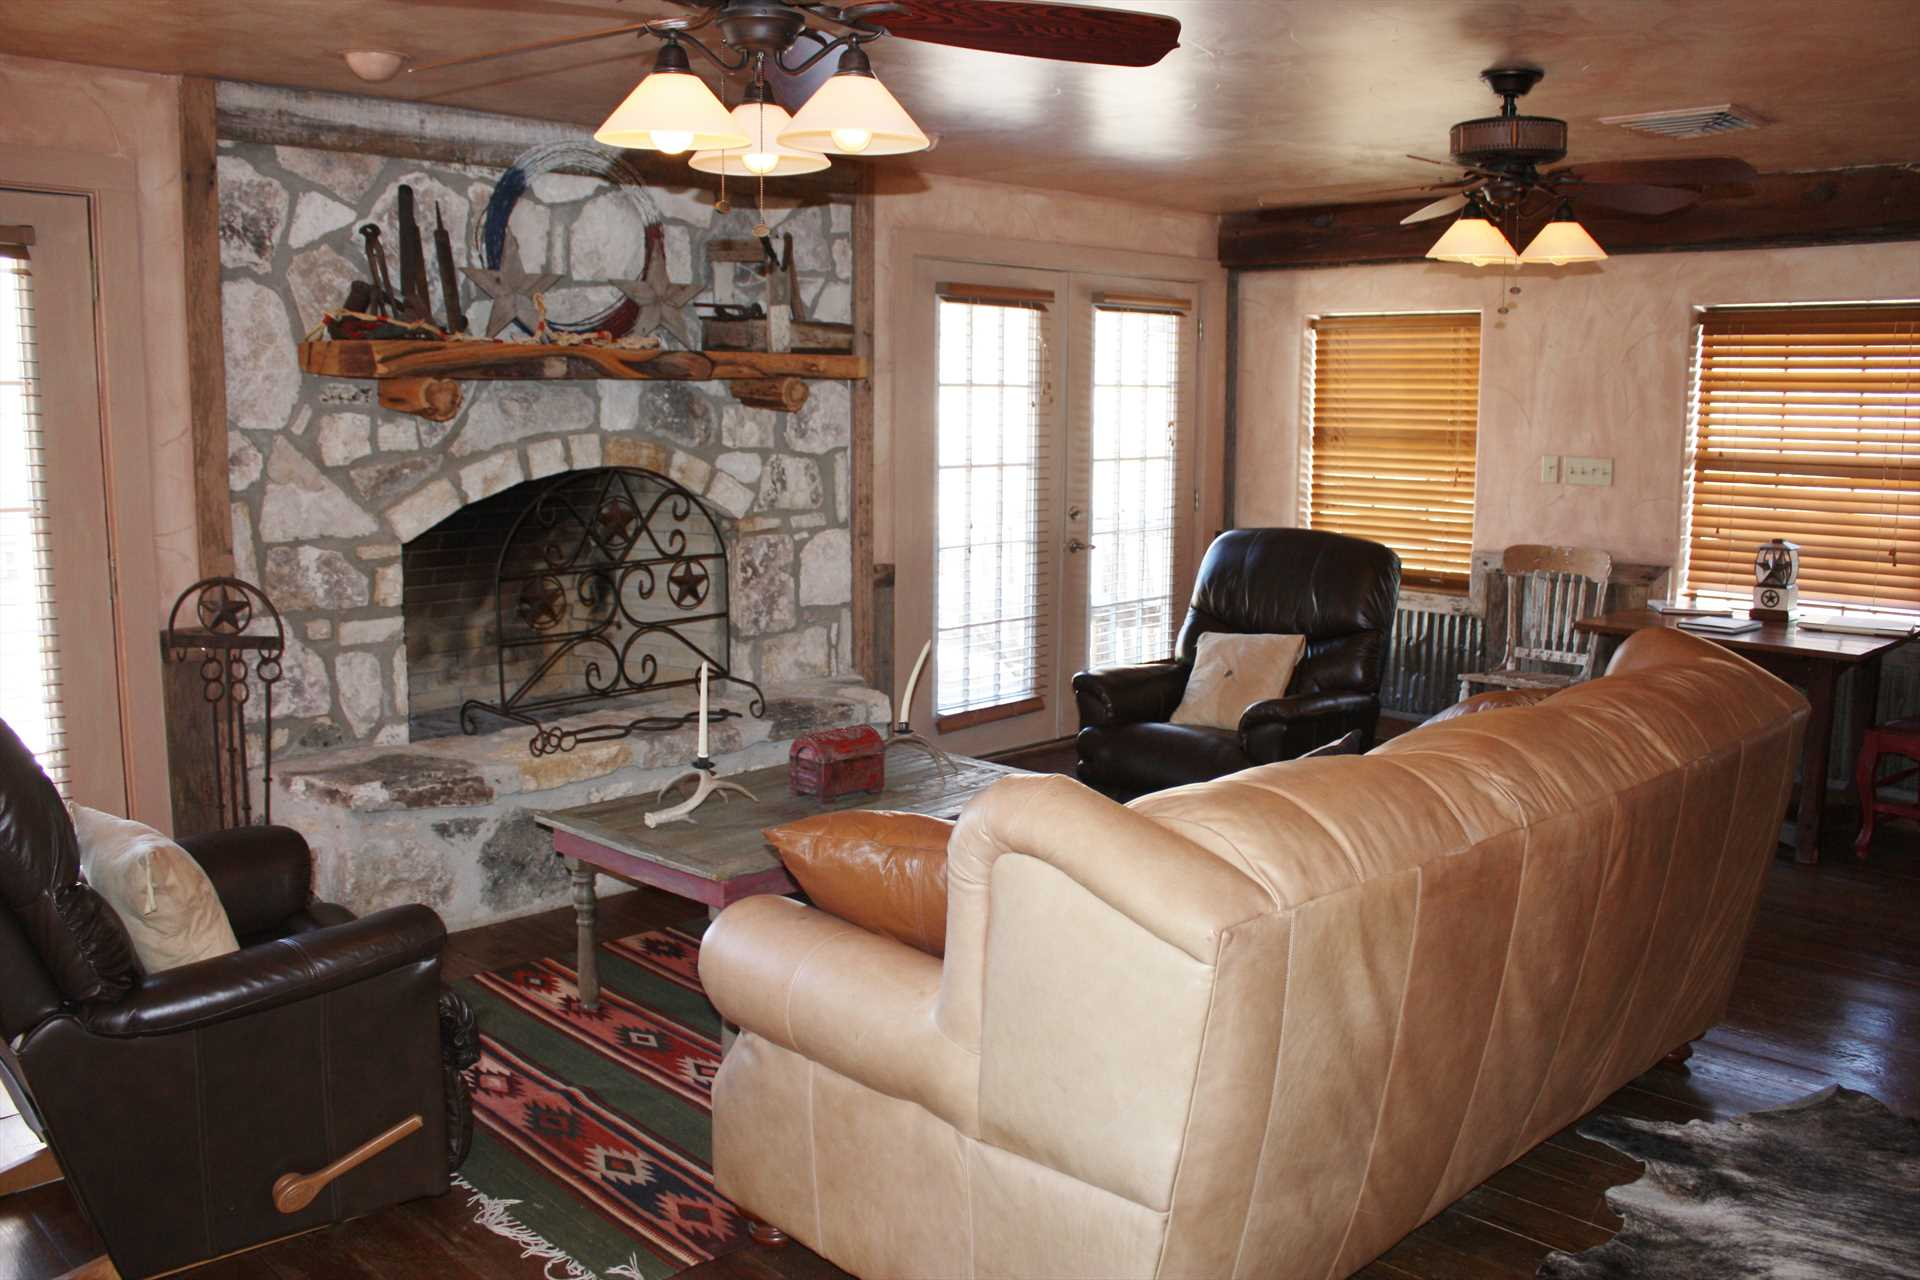 Both the upstairs and downstairs living areas at the ranch feature the welcoming ambience created by fireplaces.